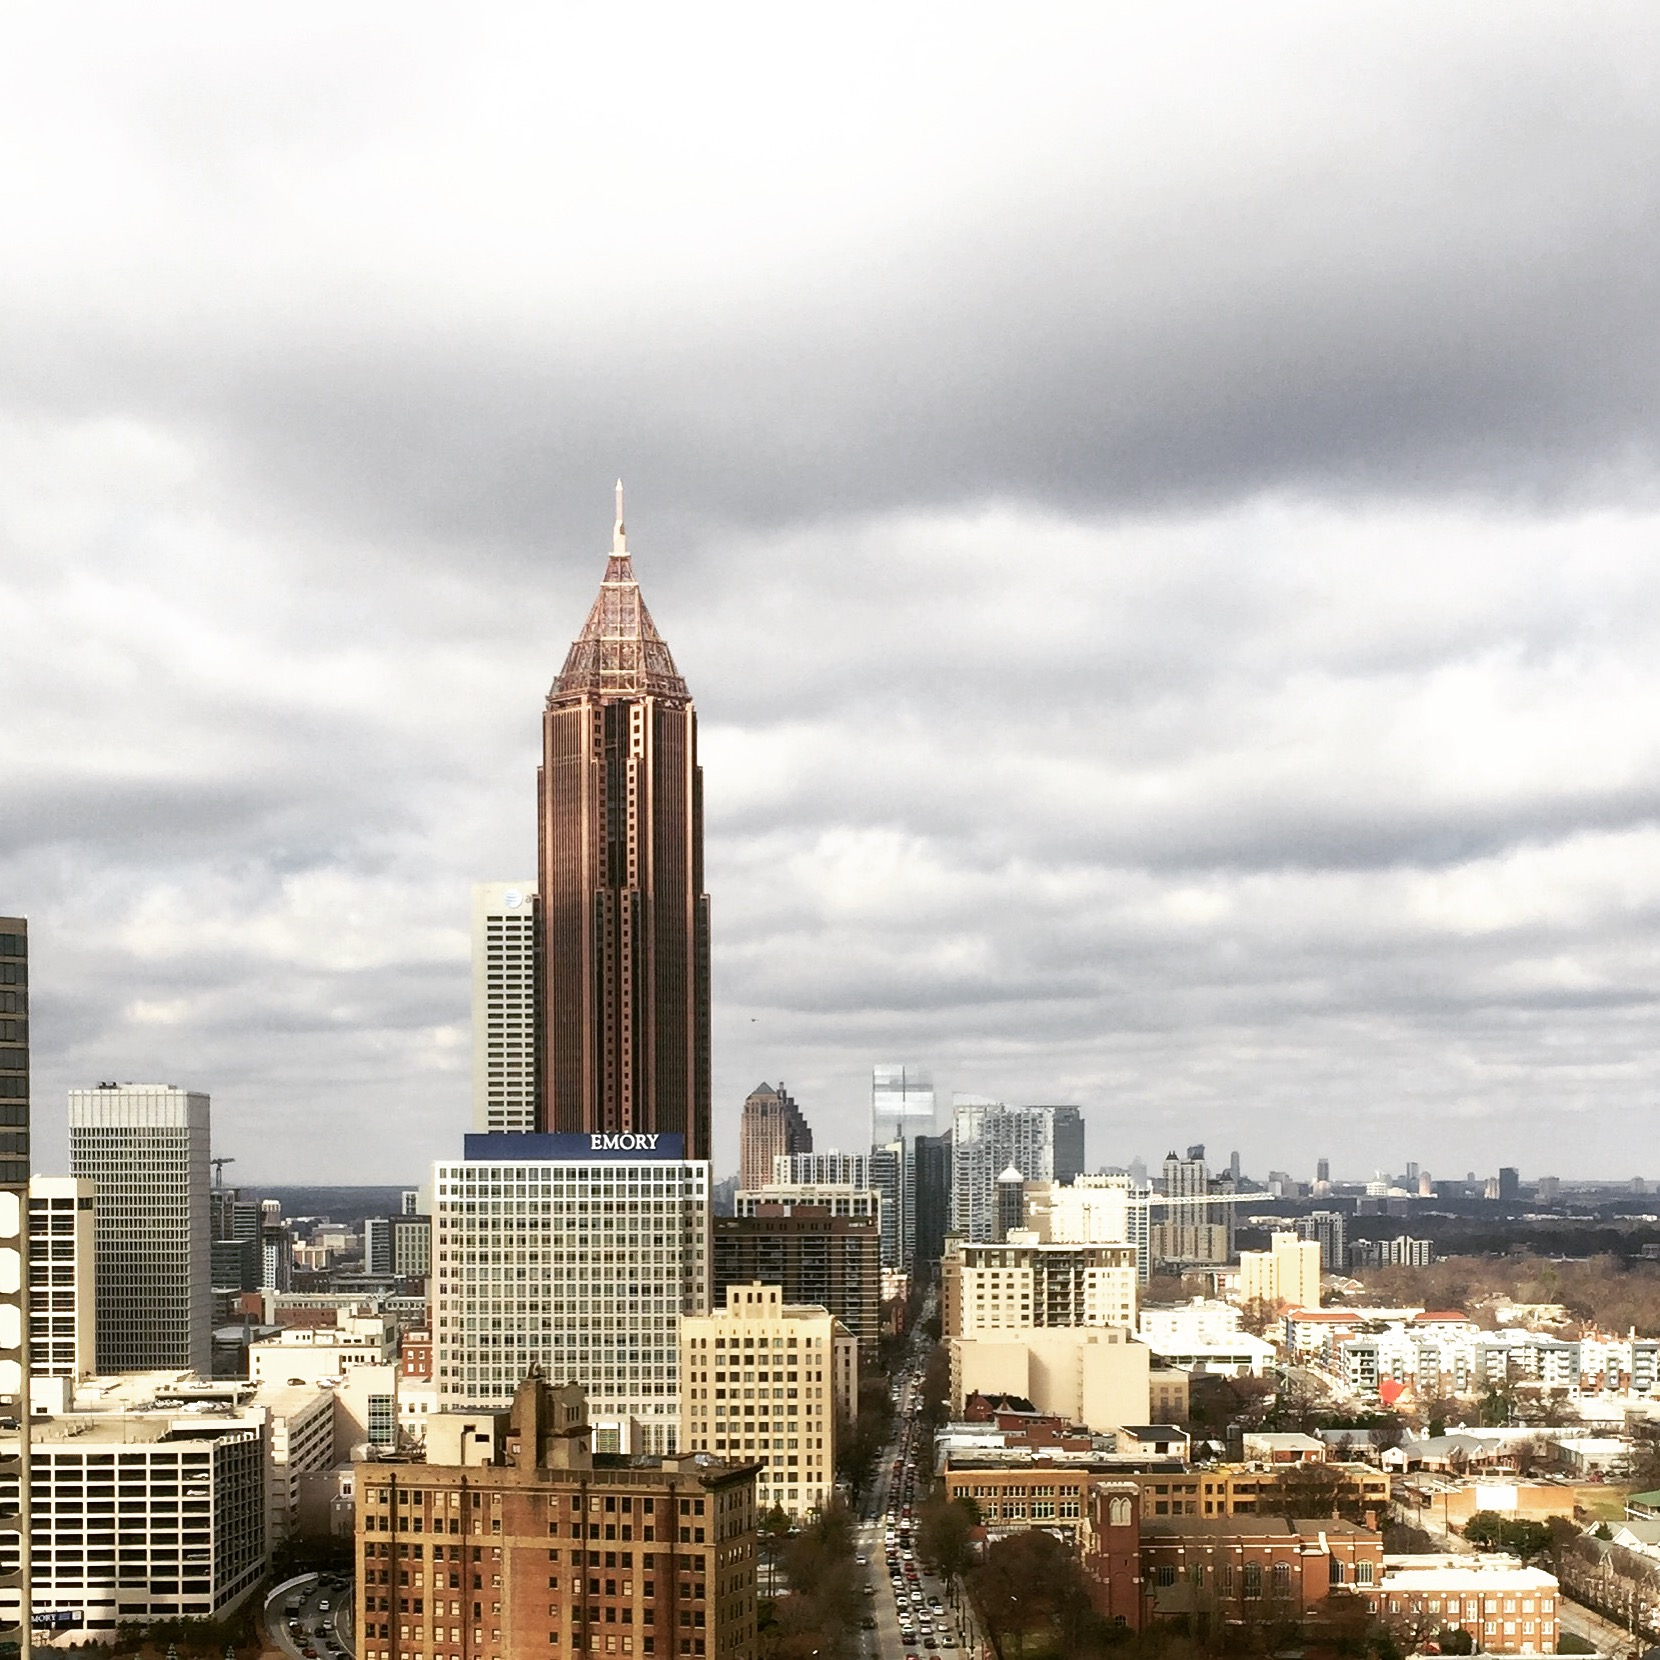 Midtown atlanta from downtown